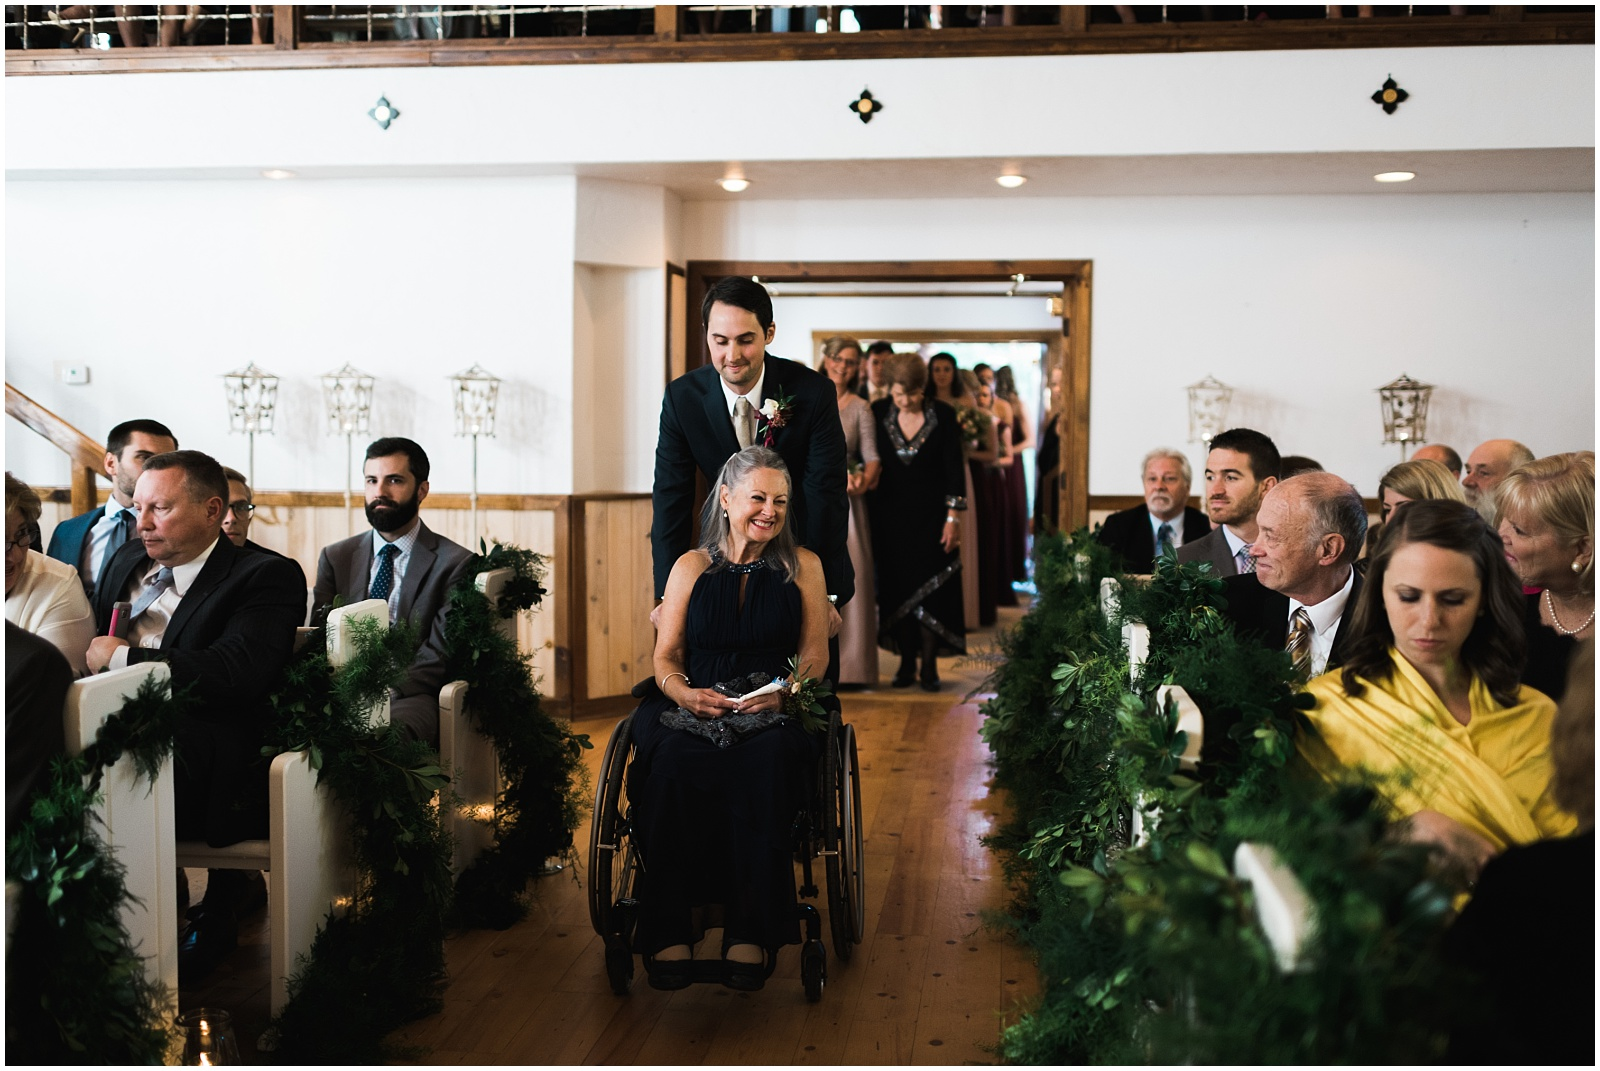 Groom and mother coming down aisle